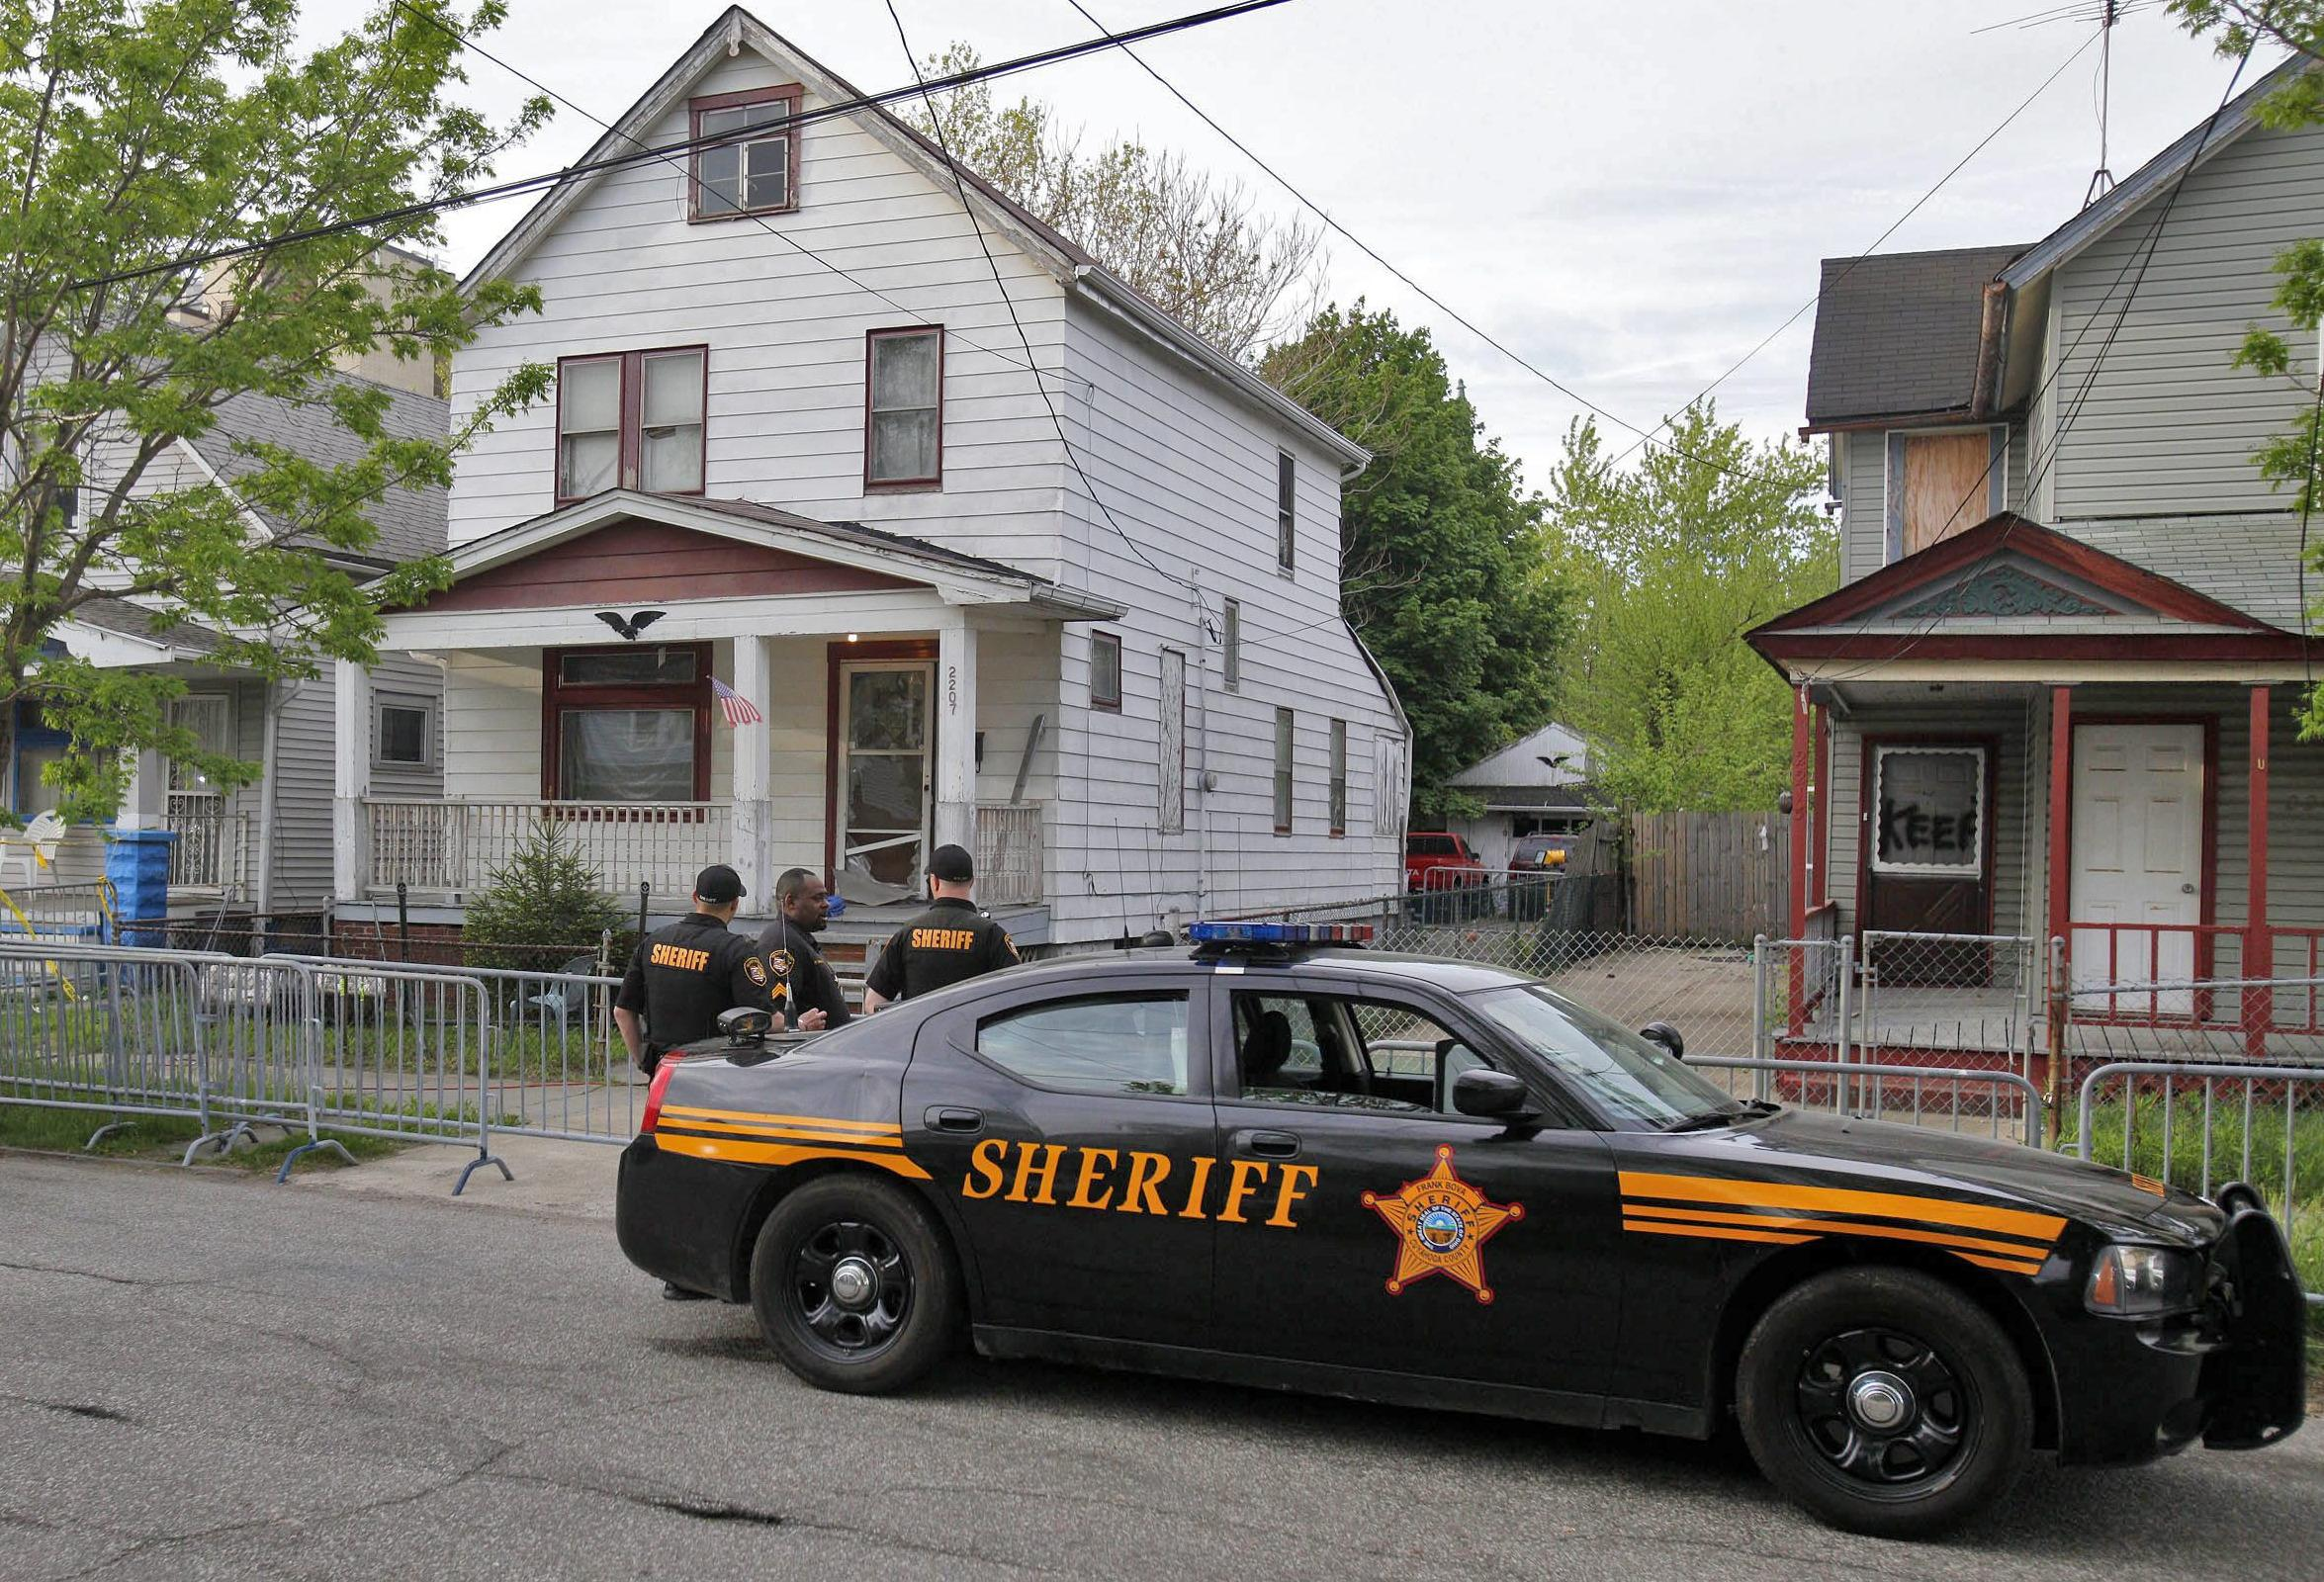 Image: Law enforcement officers stand watch in front of a house on Seymour Avenue in Cleveland, where Amanda Berry, Gina DeJesus and Michelle Knight were found.